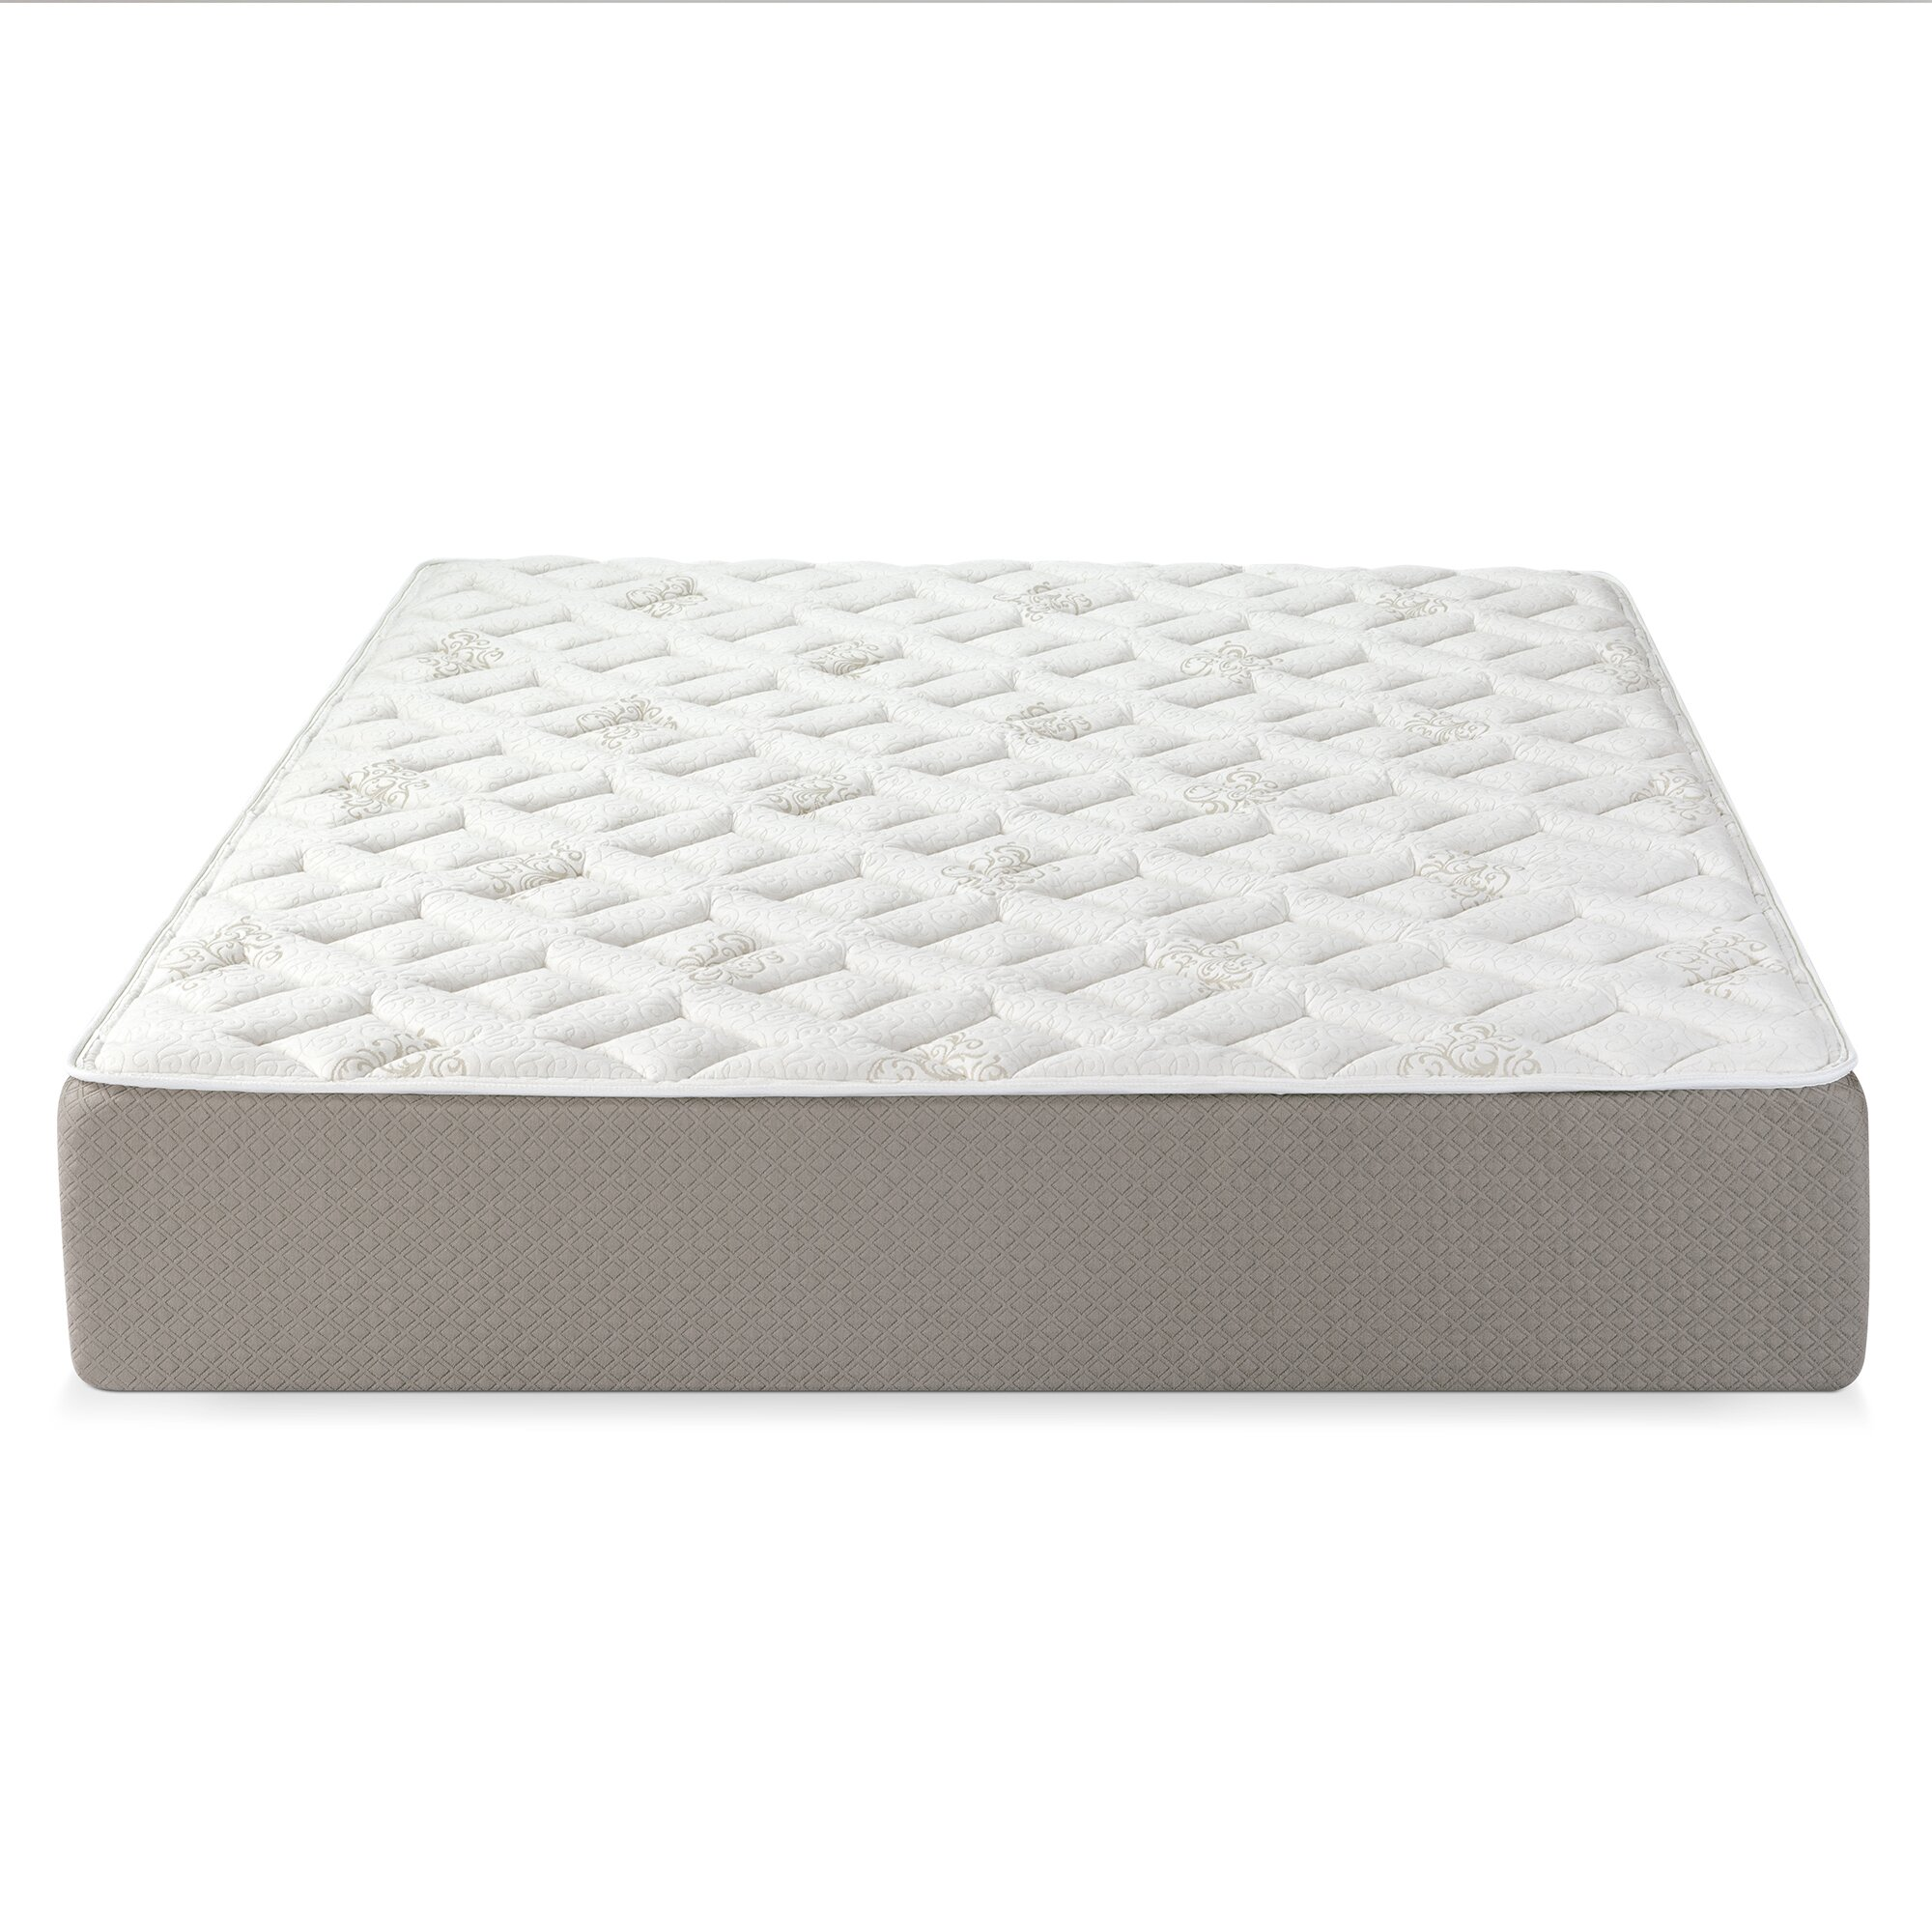 Serenia sleep 12 gel memory foam mattress reviews wayfair Mattress sale memory foam